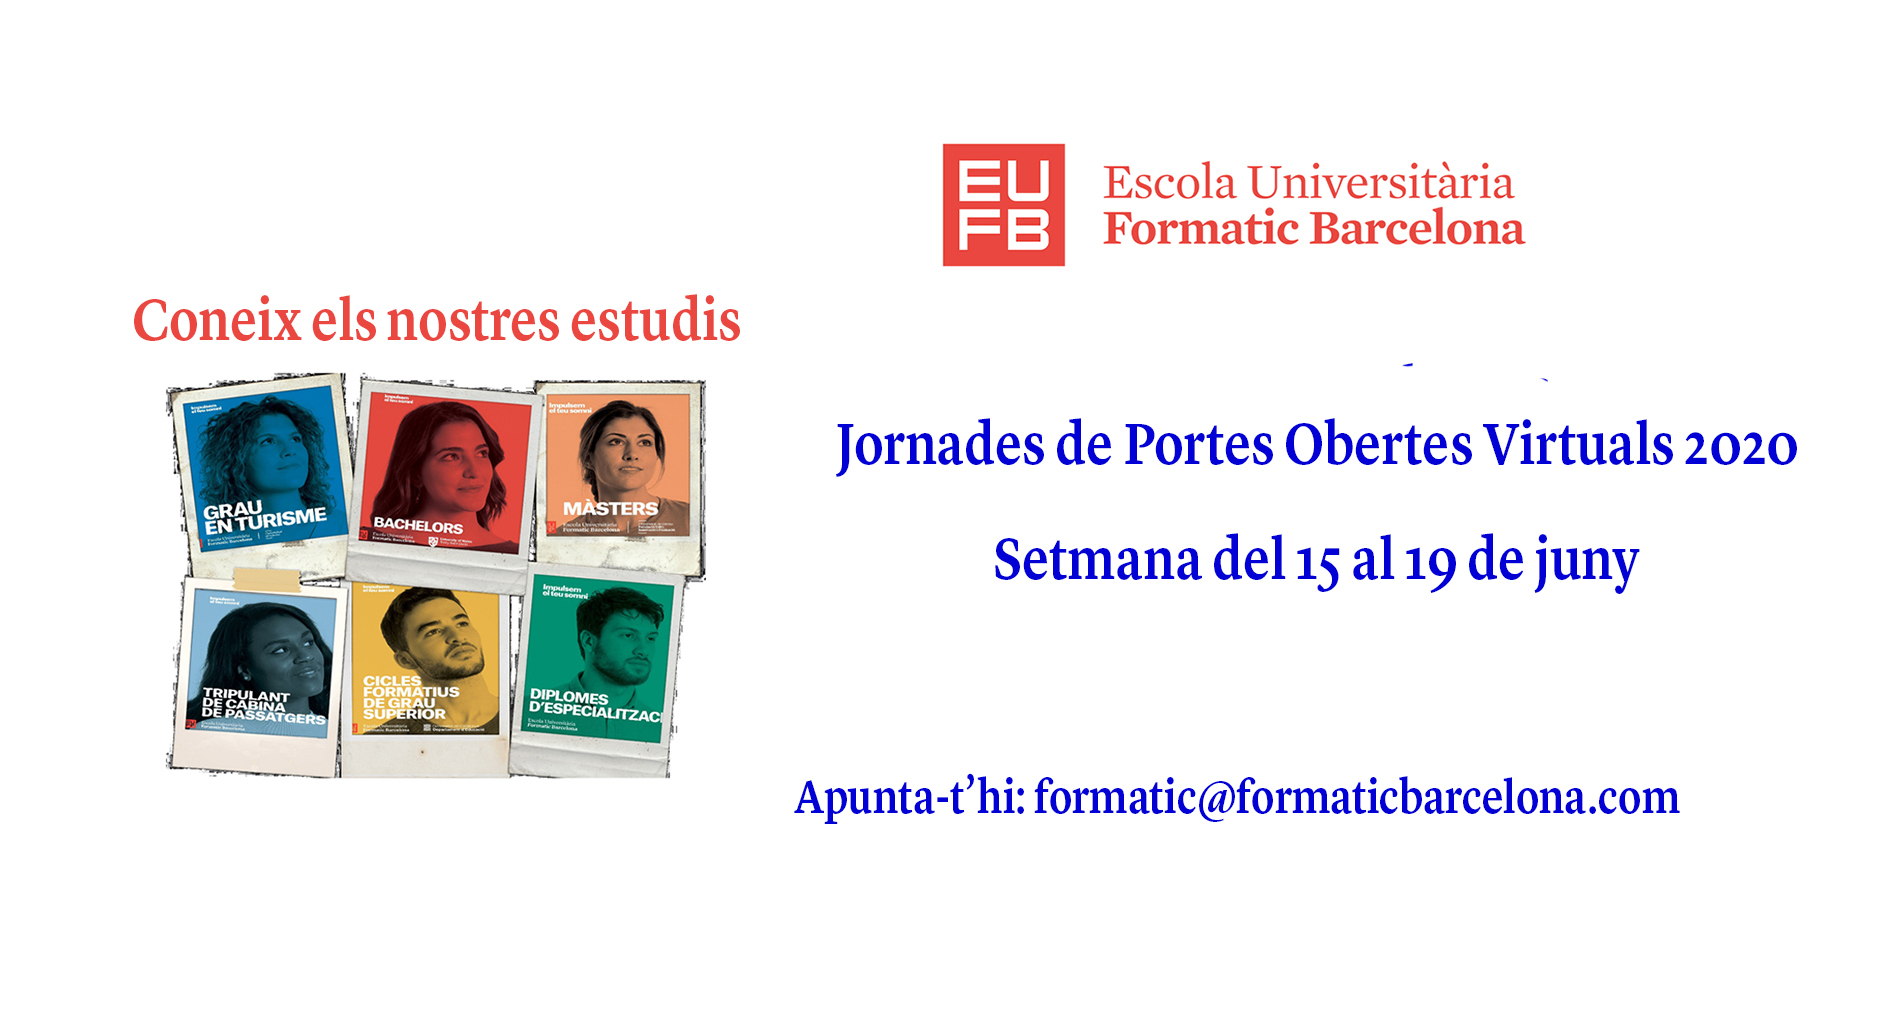 | Escuela Universitaria Formatic Barcelona